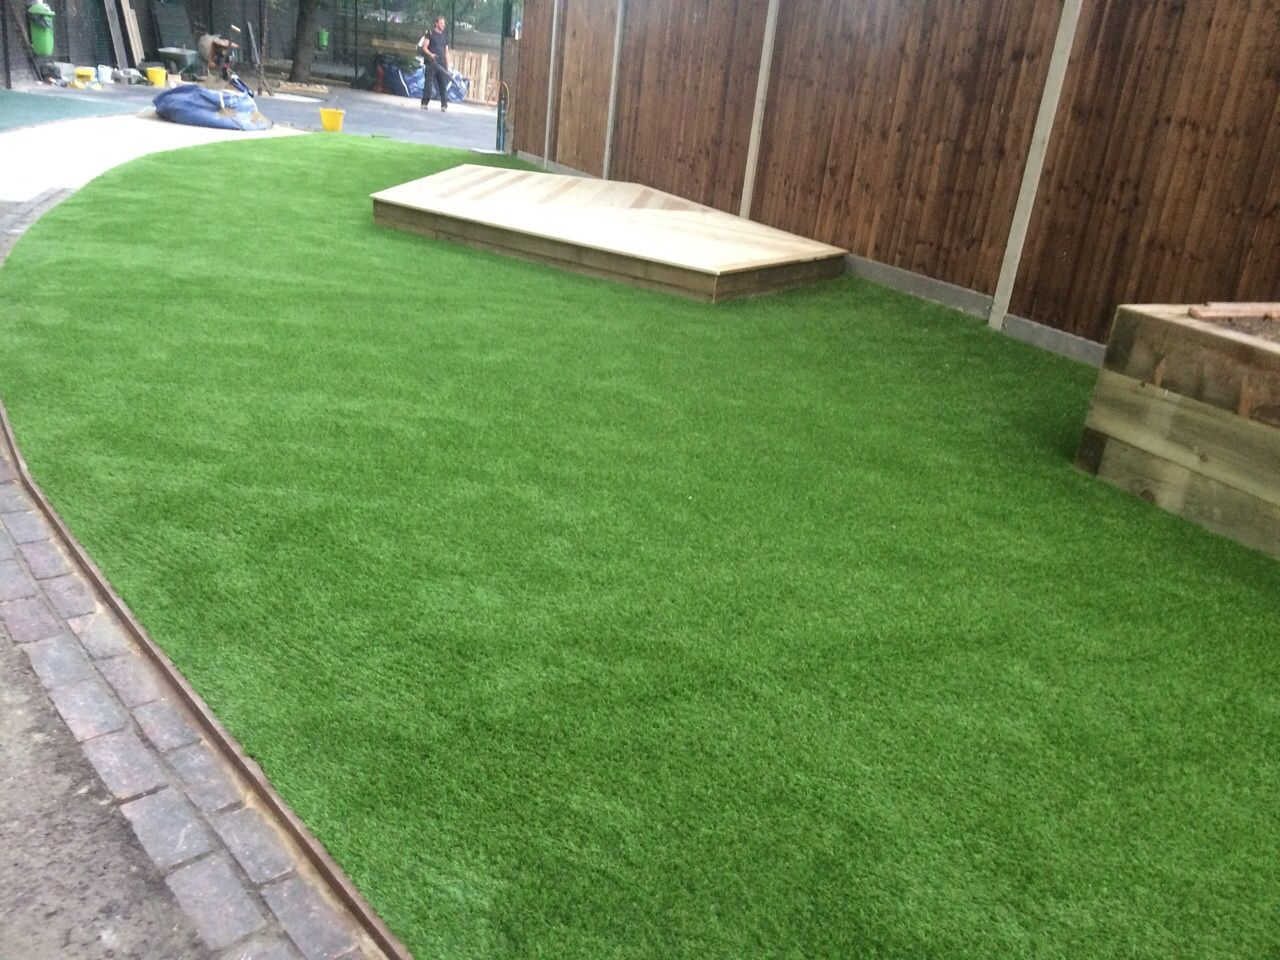 Fake Grass Prices Synthetic Turf Preparation In Killead 10 Artificial Turf